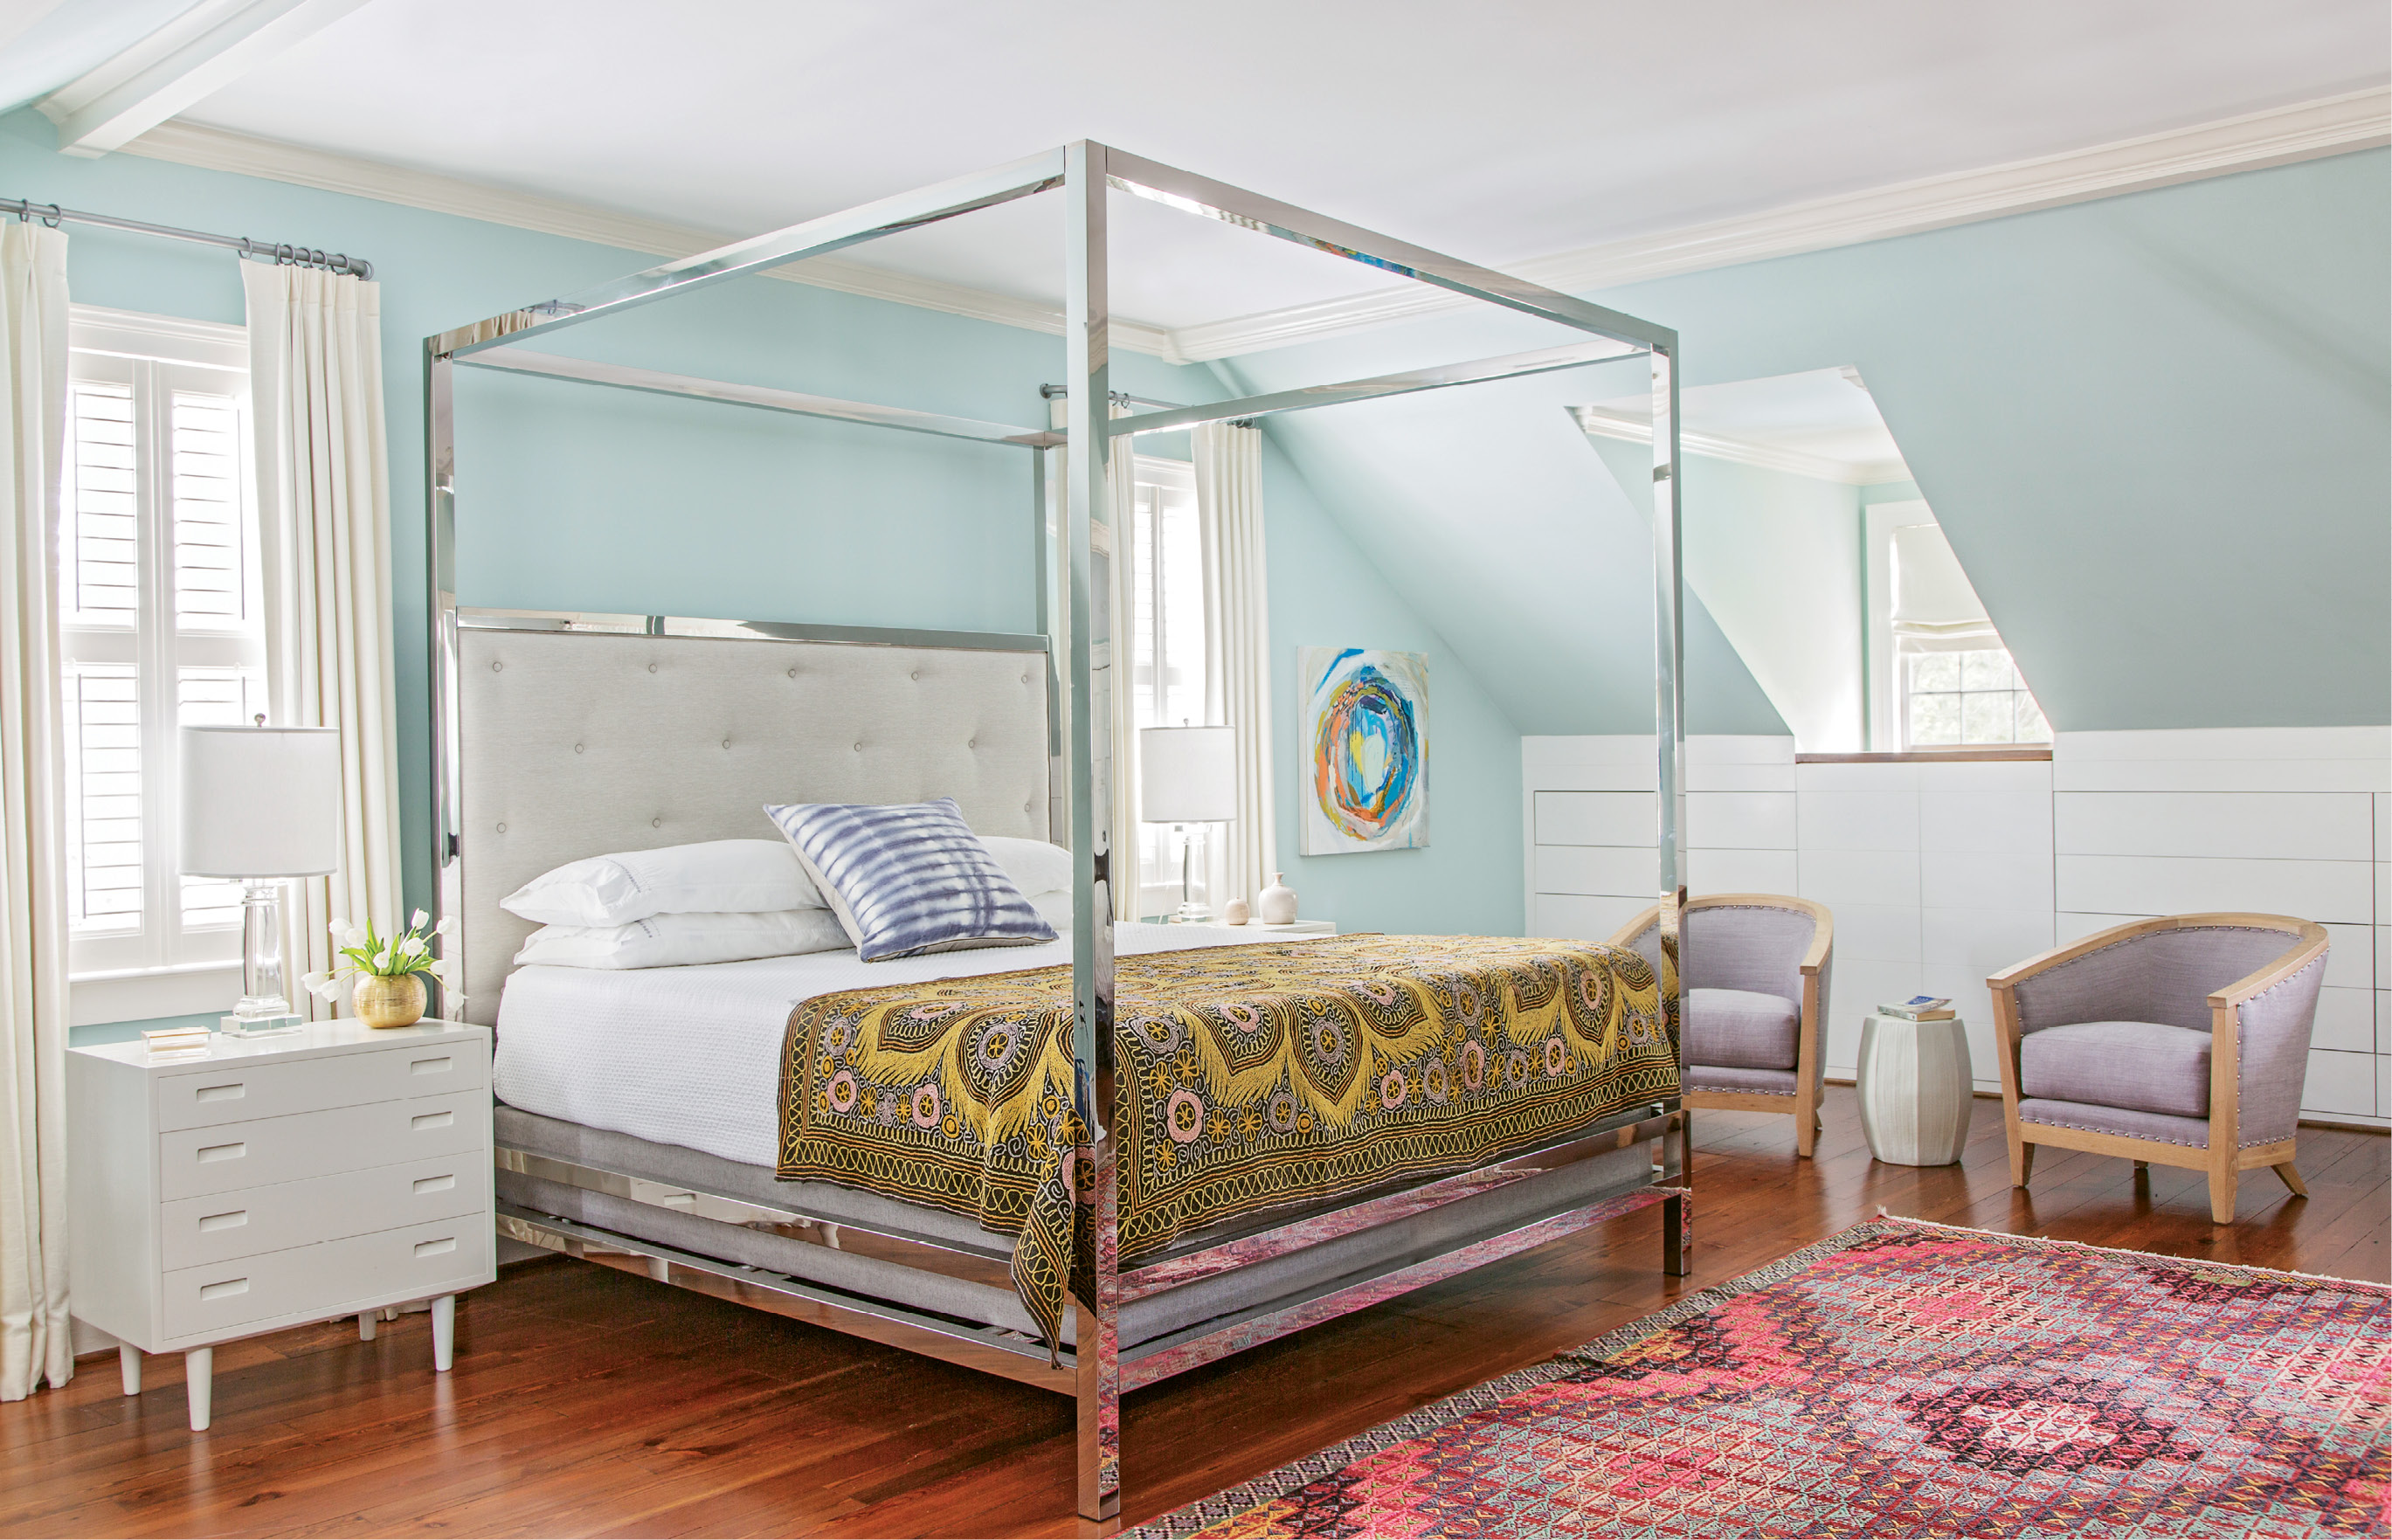 In the master bedroom, vintage textiles and mid-century nightstands add depth and texture to a streamlined canopy bed